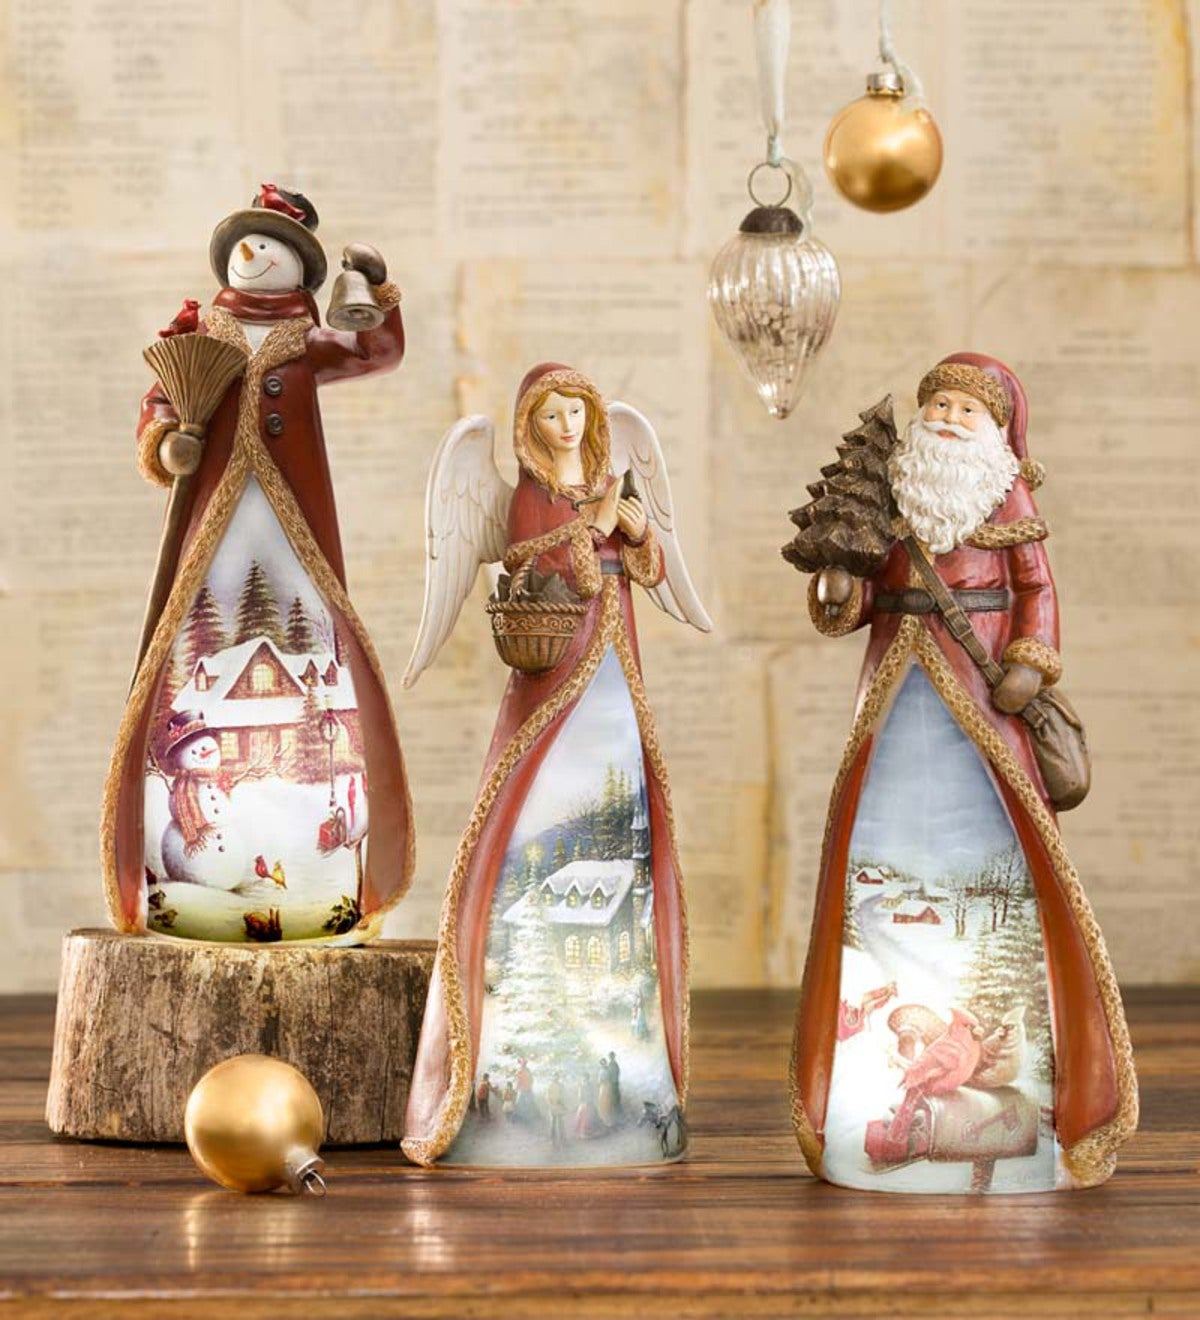 Glowing Holiday Tabletop Statue-Angel, Santa, Snowman